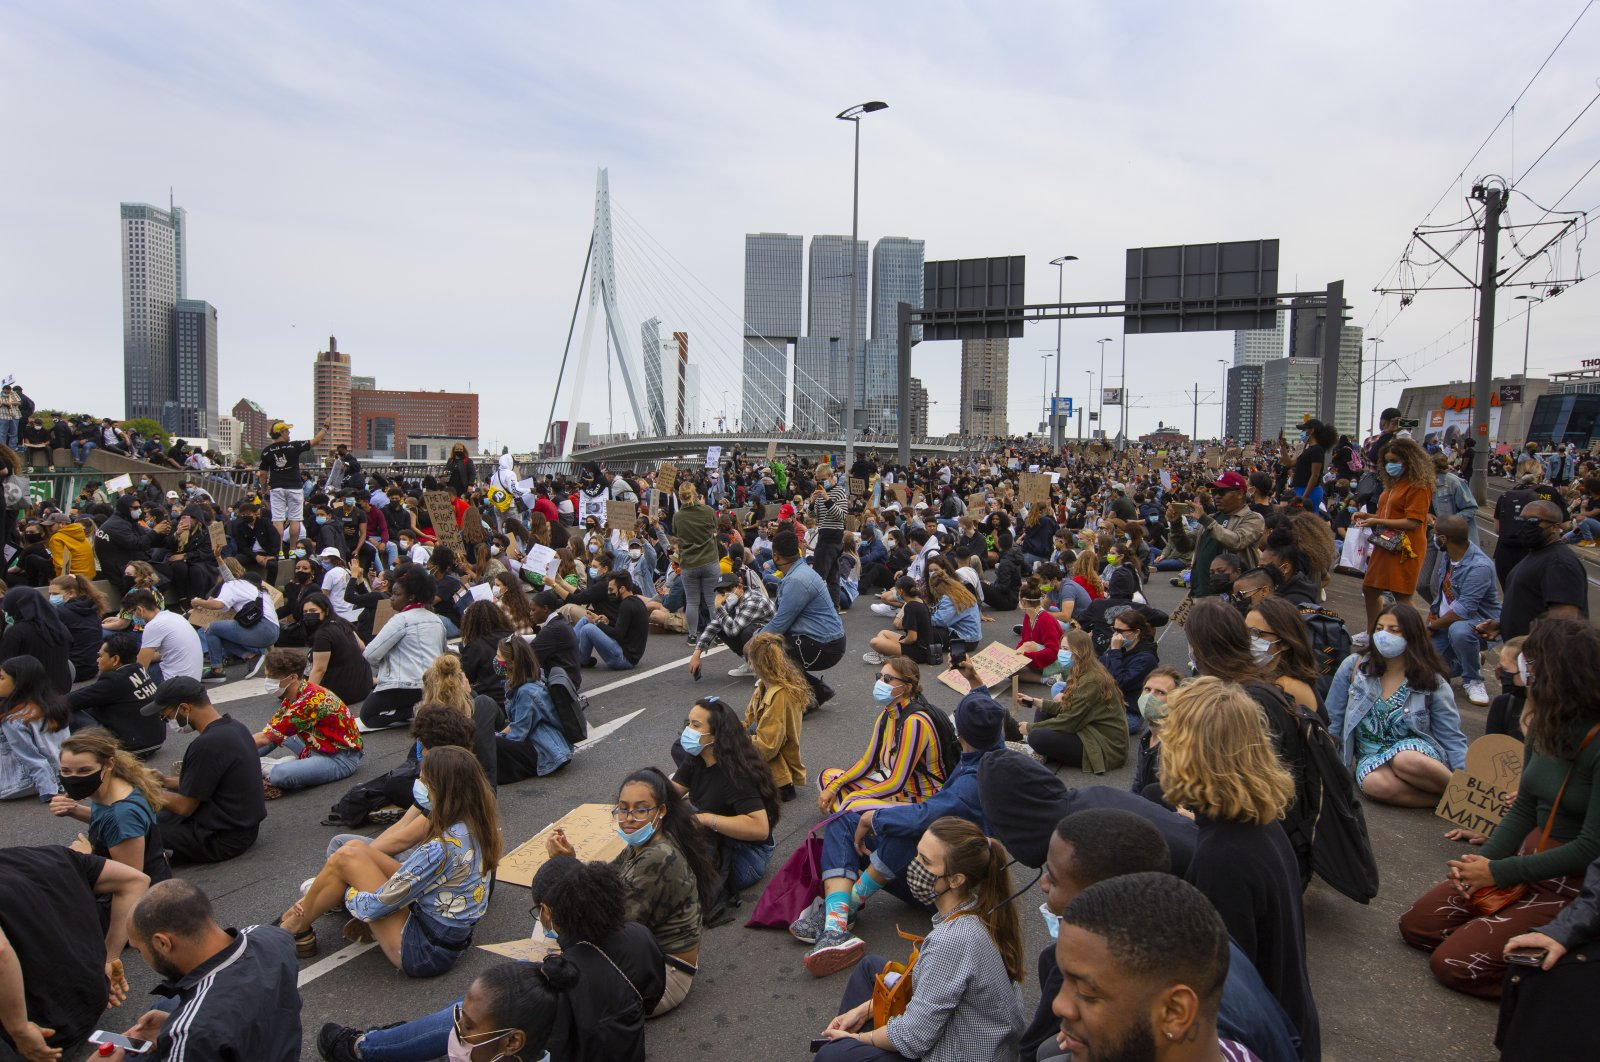 Thousands of people take part in a demonstration, Rotterdam, June 3, 2020. (AP Photo)